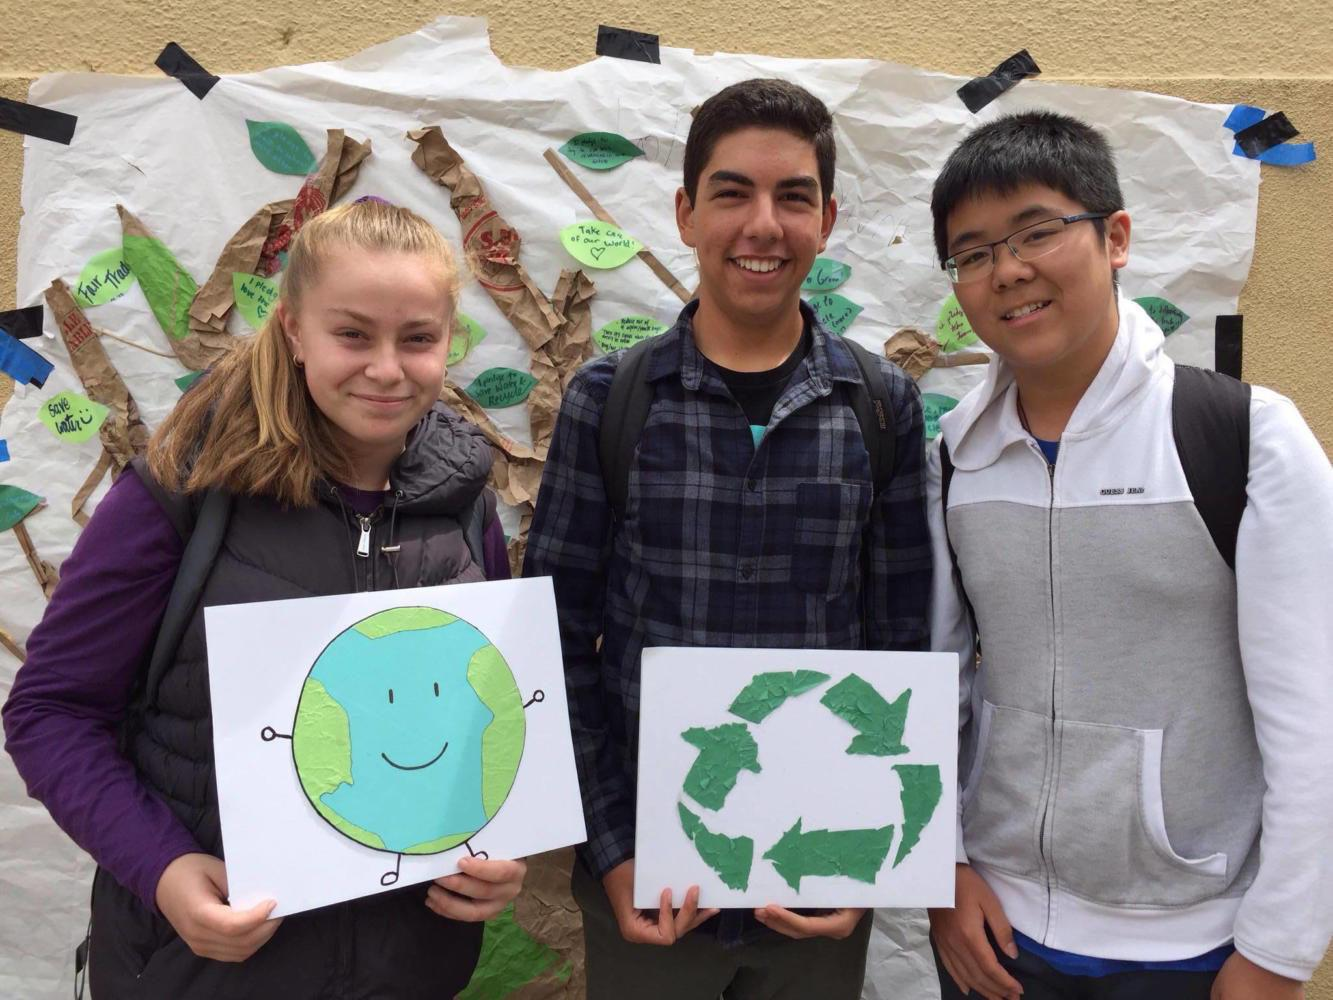 Students posed with the Pledge Tree to show their commitment to their environmental pledges. Some pledges included using reusable water bottles, composting, carpooling, and spreading the word about being eco-conscious.